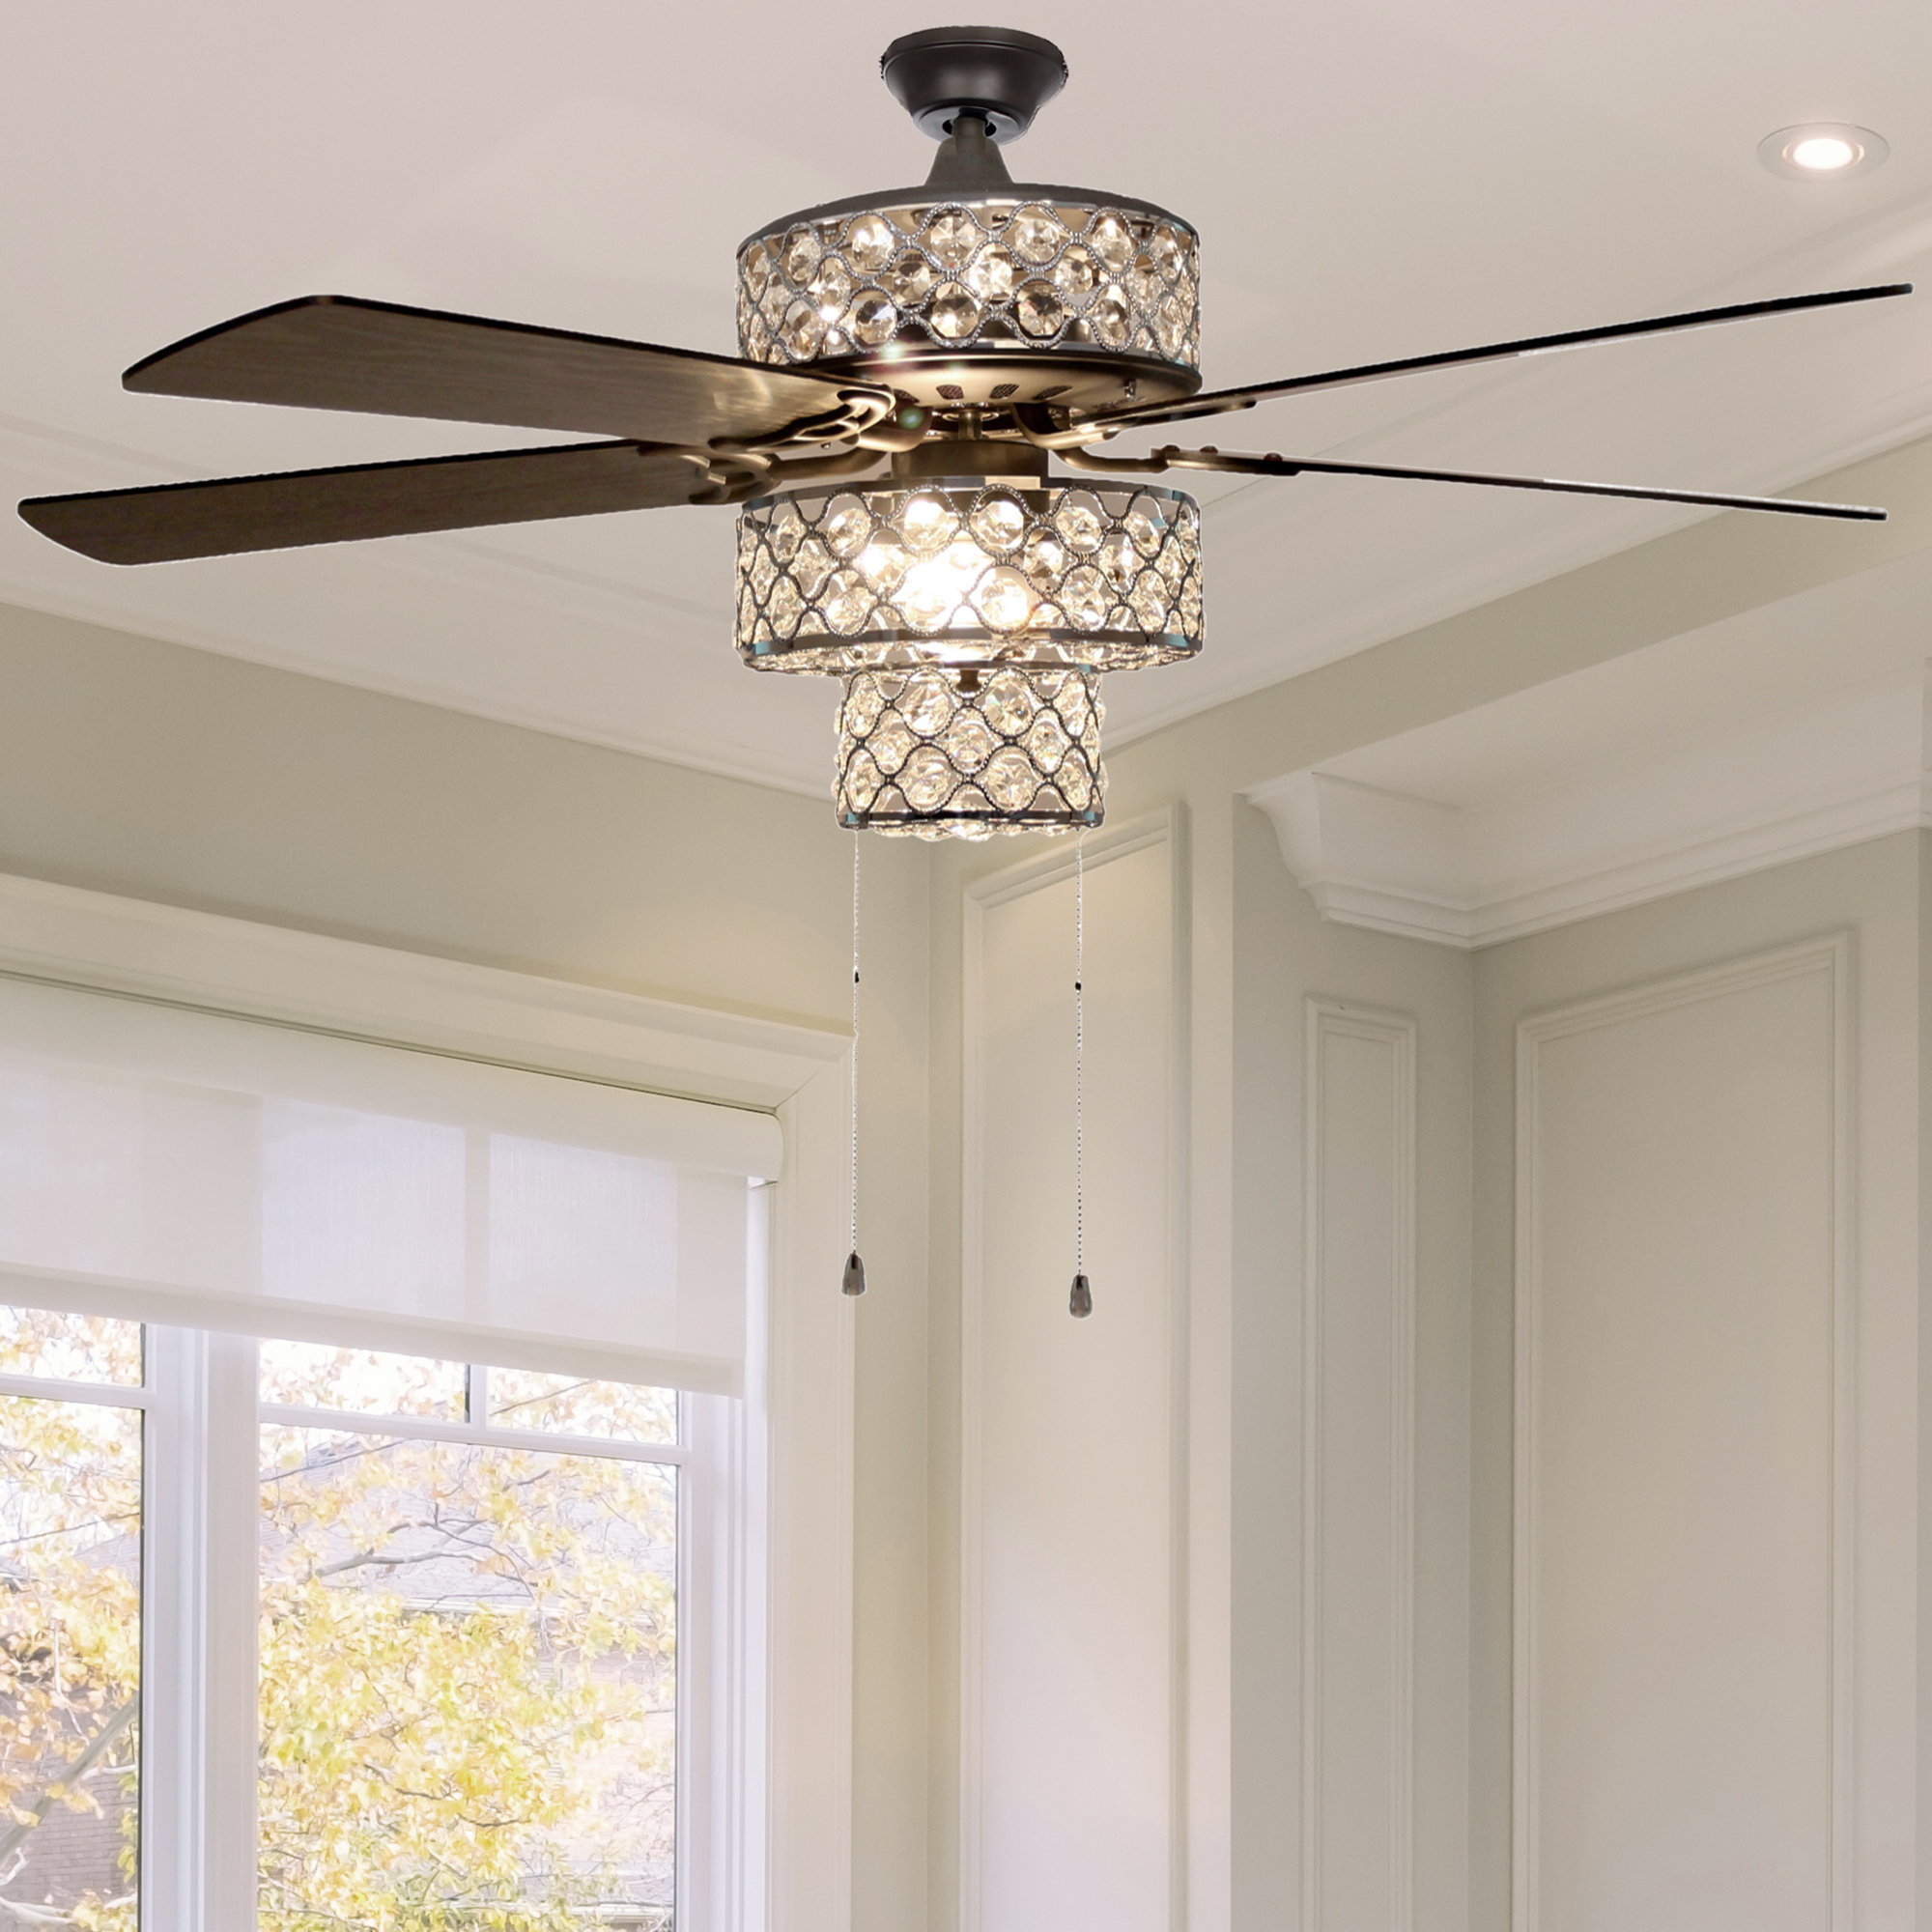 "52"" Marleigh Tri Tiered 5 Blade Ceiling Fan With Remote, Light Kit Included Pertaining To Most Up To Date Tibuh Punched Metal Crystal 5 Blade Ceiling Fans With Remote (View 11 of 20)"